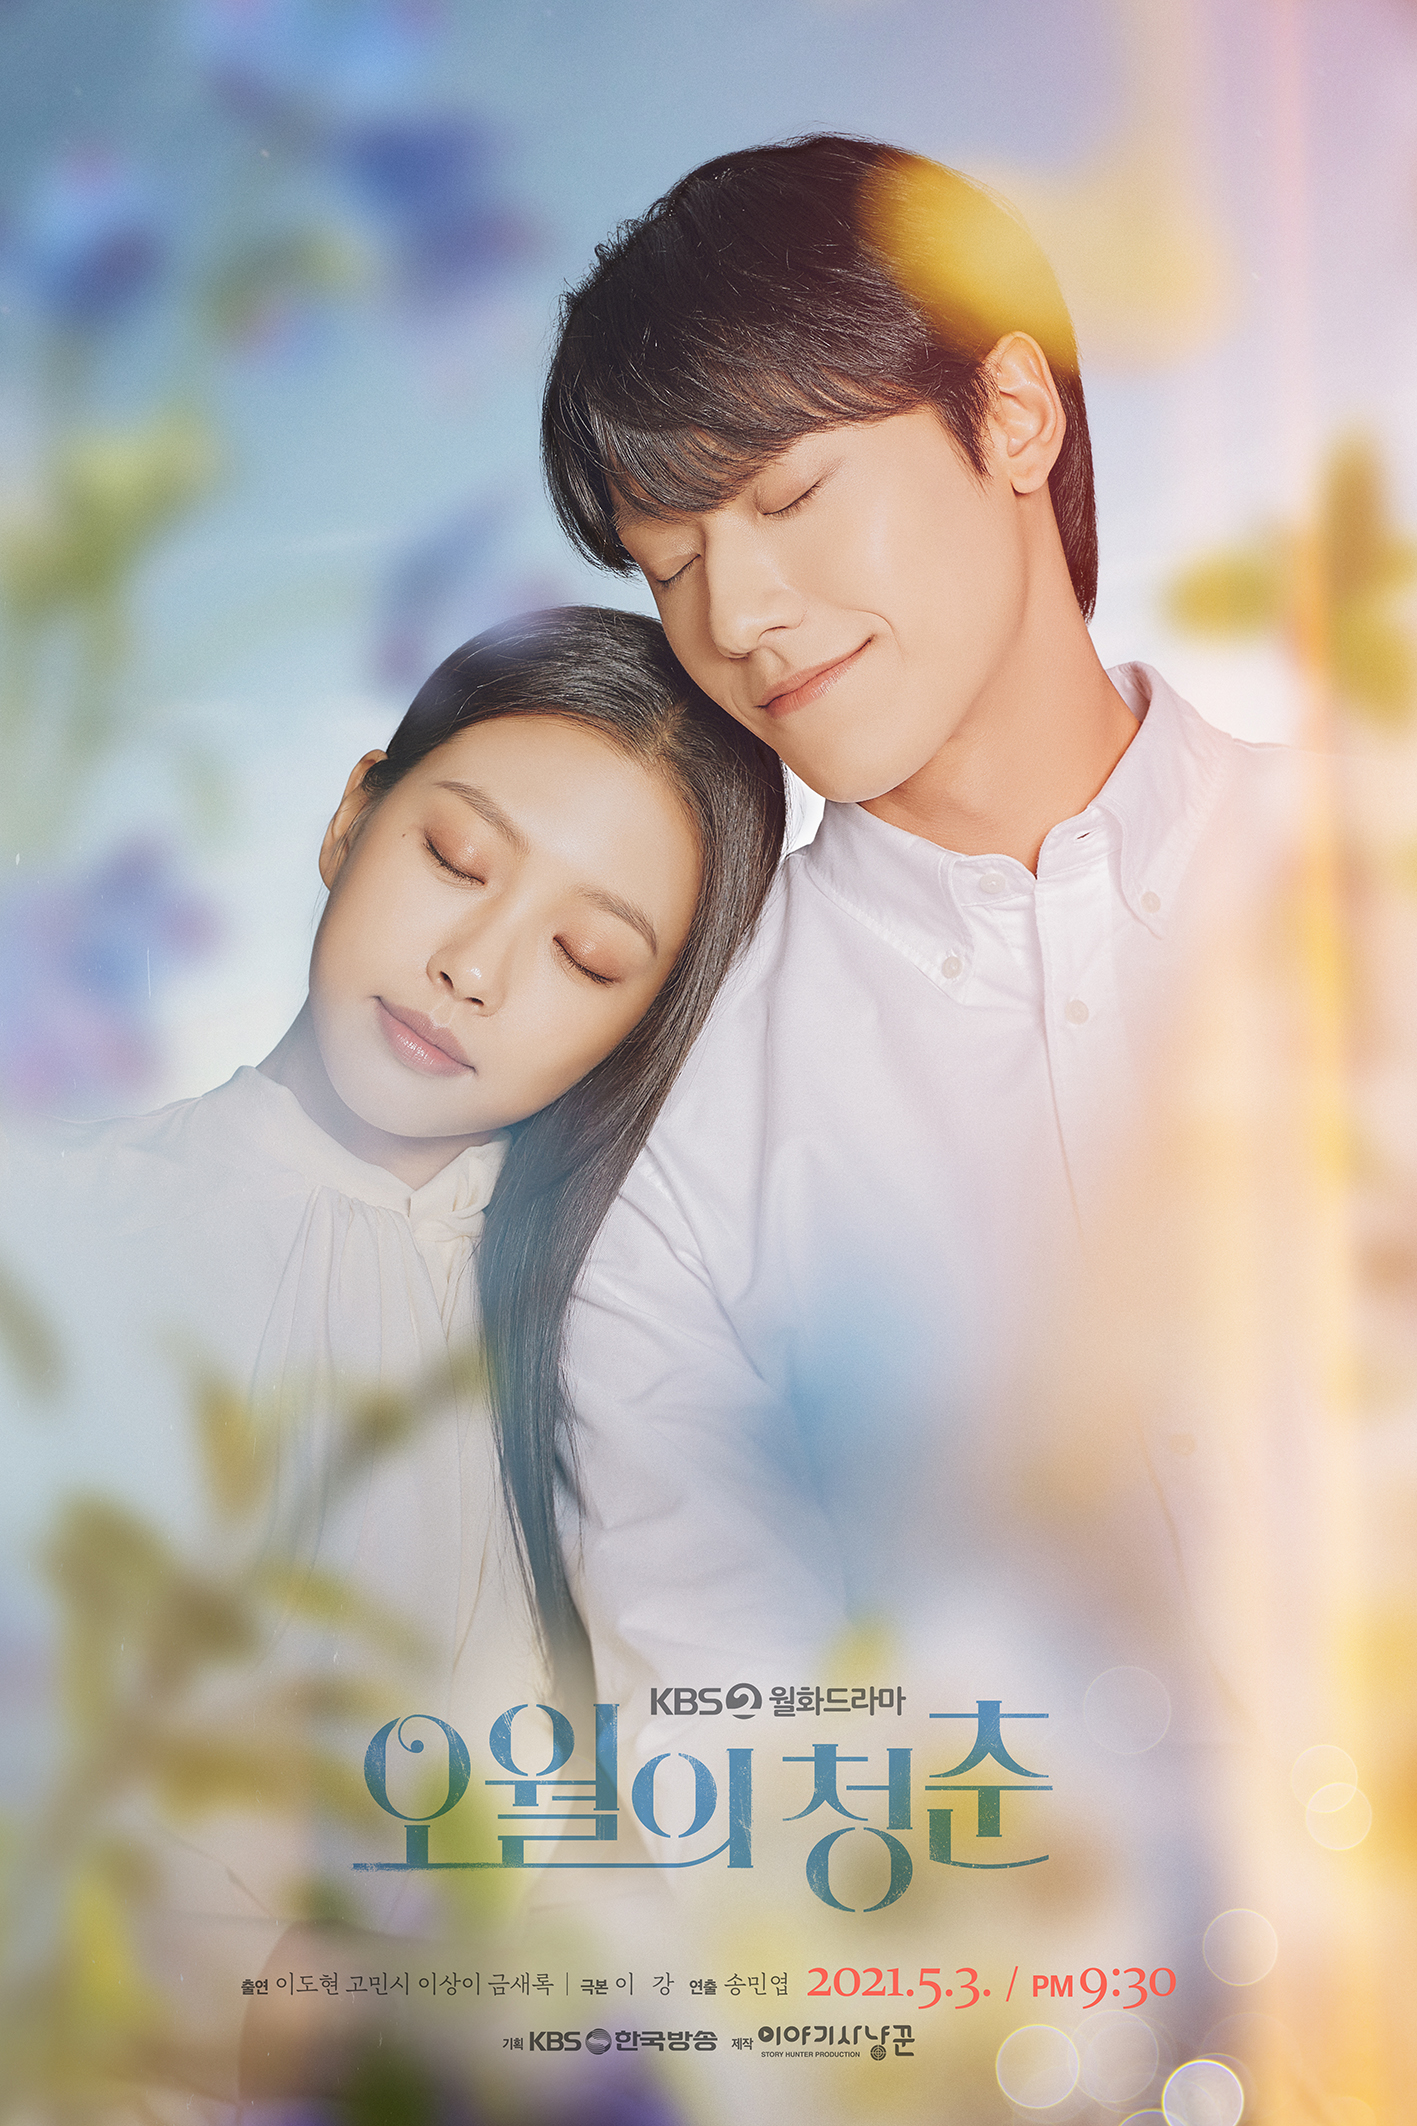 Set in 1980s during the Gwangju Uprising, Youth of May tells the love story of a medical student Hwang Hee Tae and a nurse Kim Myung Hee.